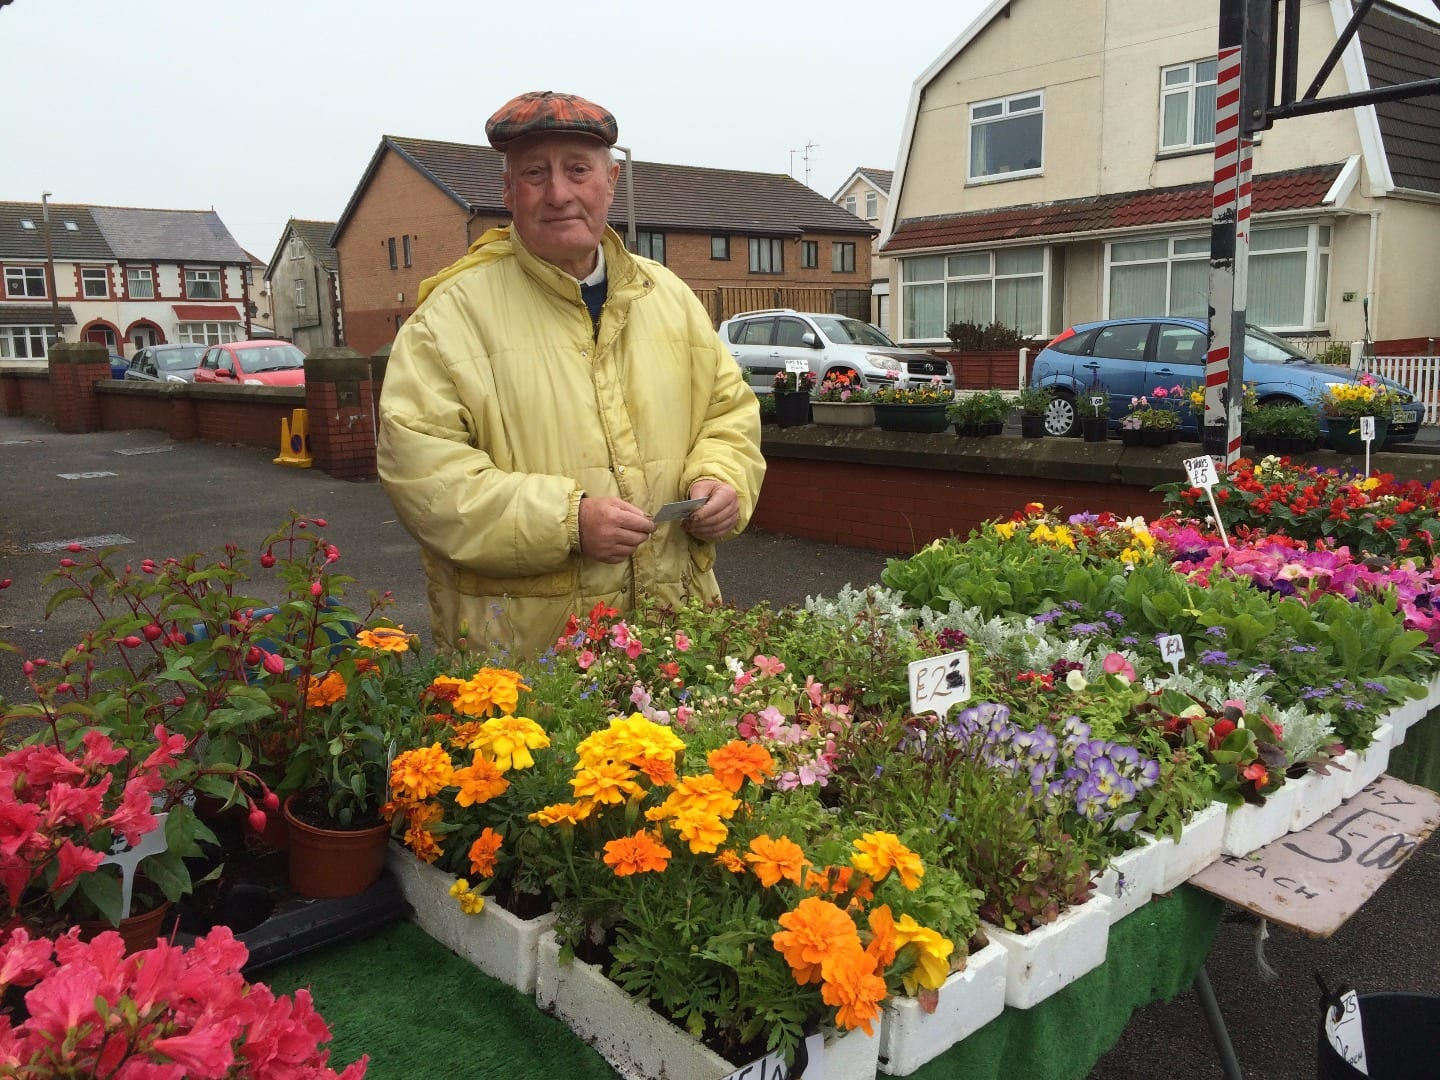 Plants at Cleveleys Community Centre